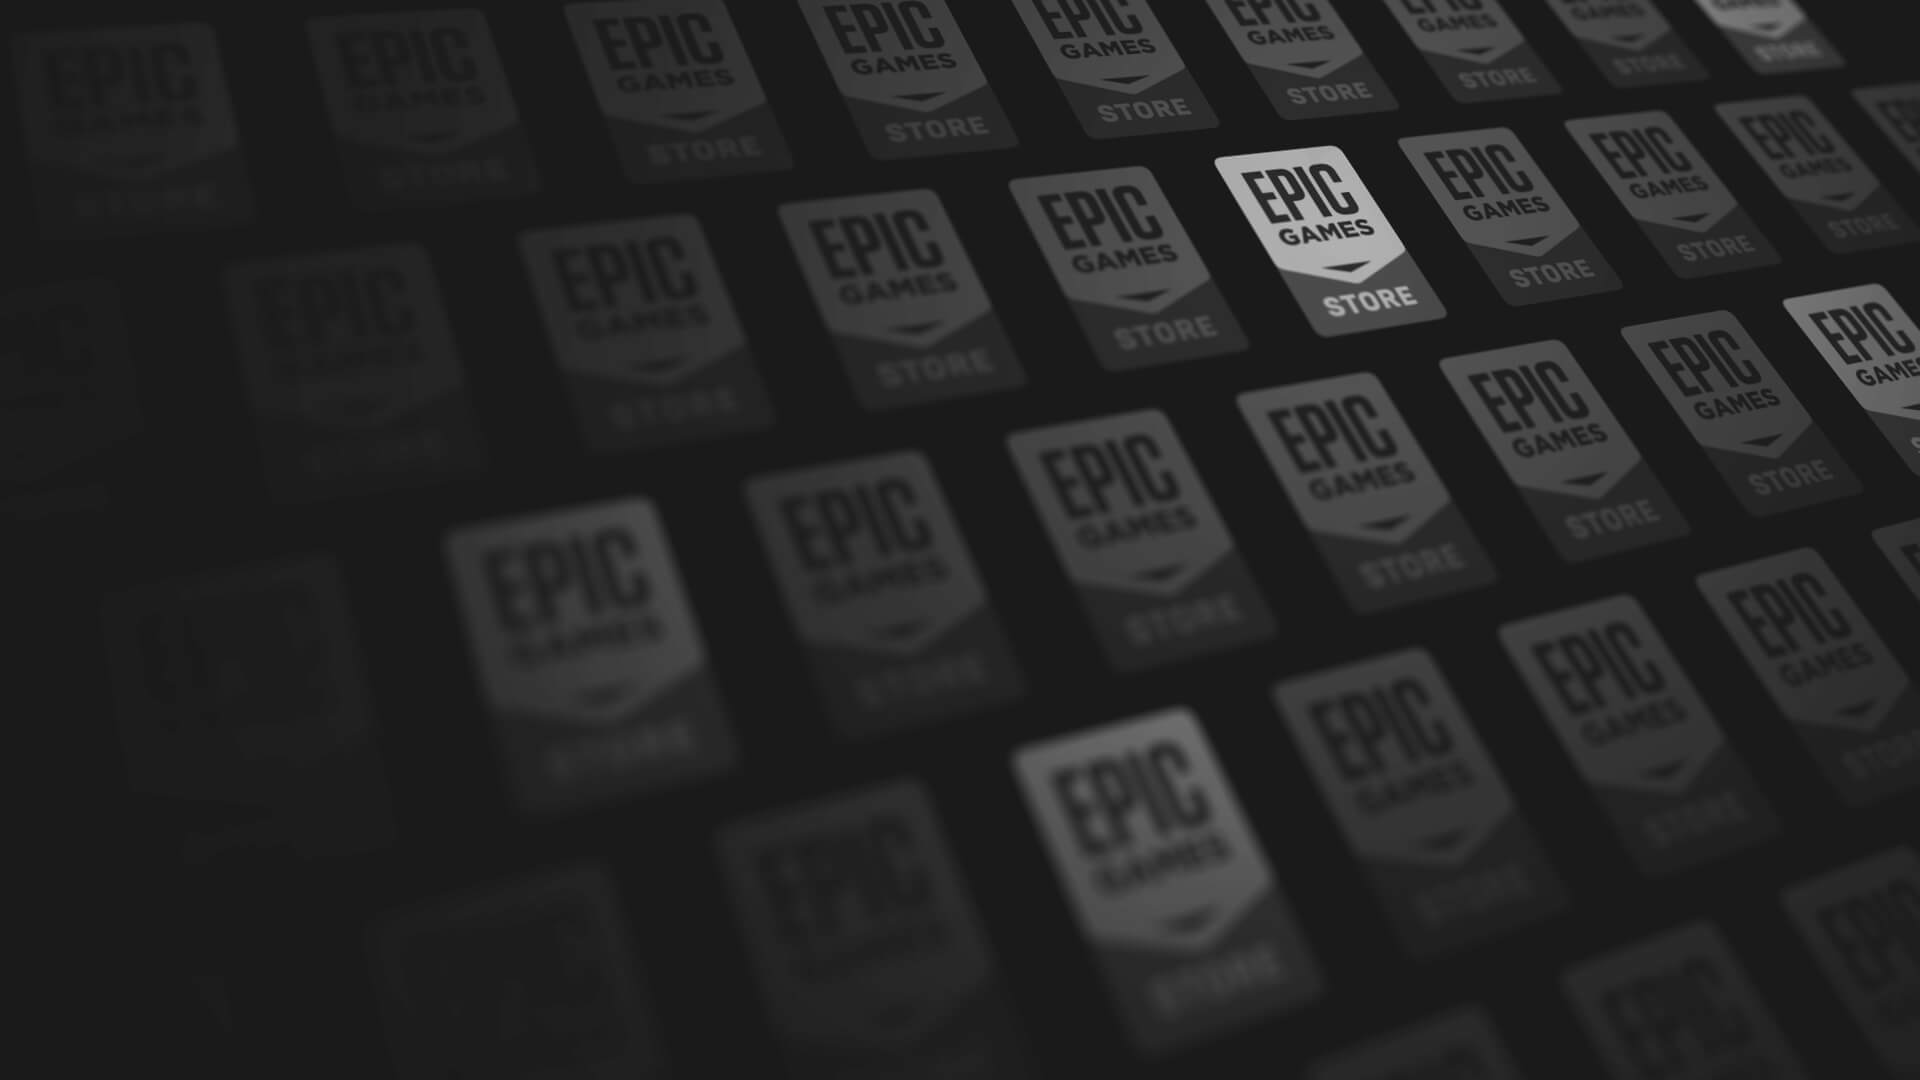 Epic Games | Store